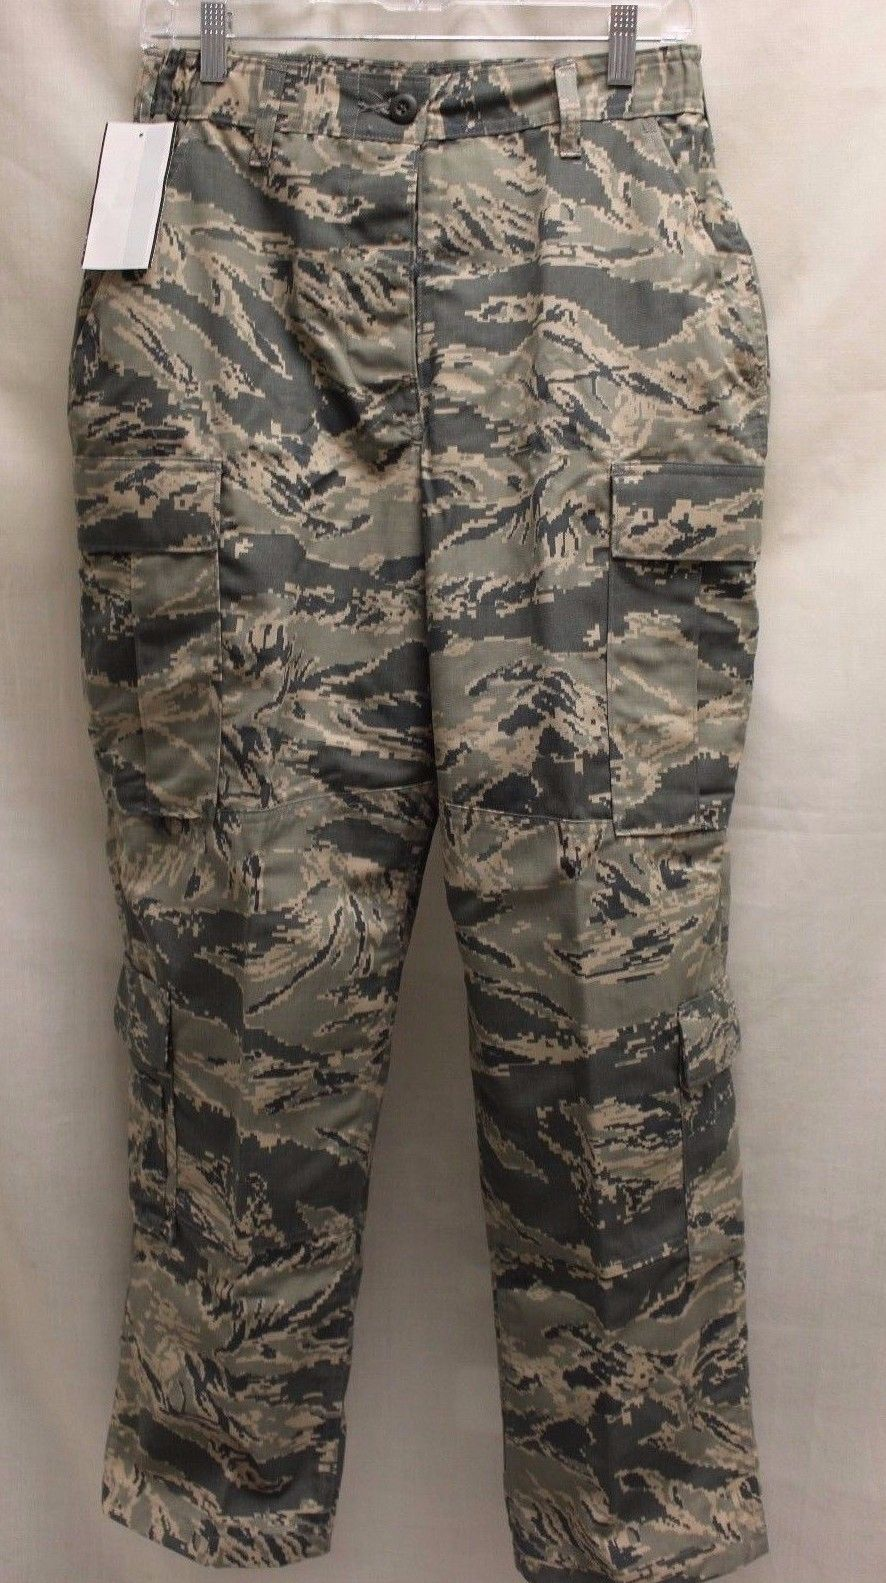 USAF Women's Utility Trousers, Digital Tiger, 10S, NSN 8410-01-598-7273, New